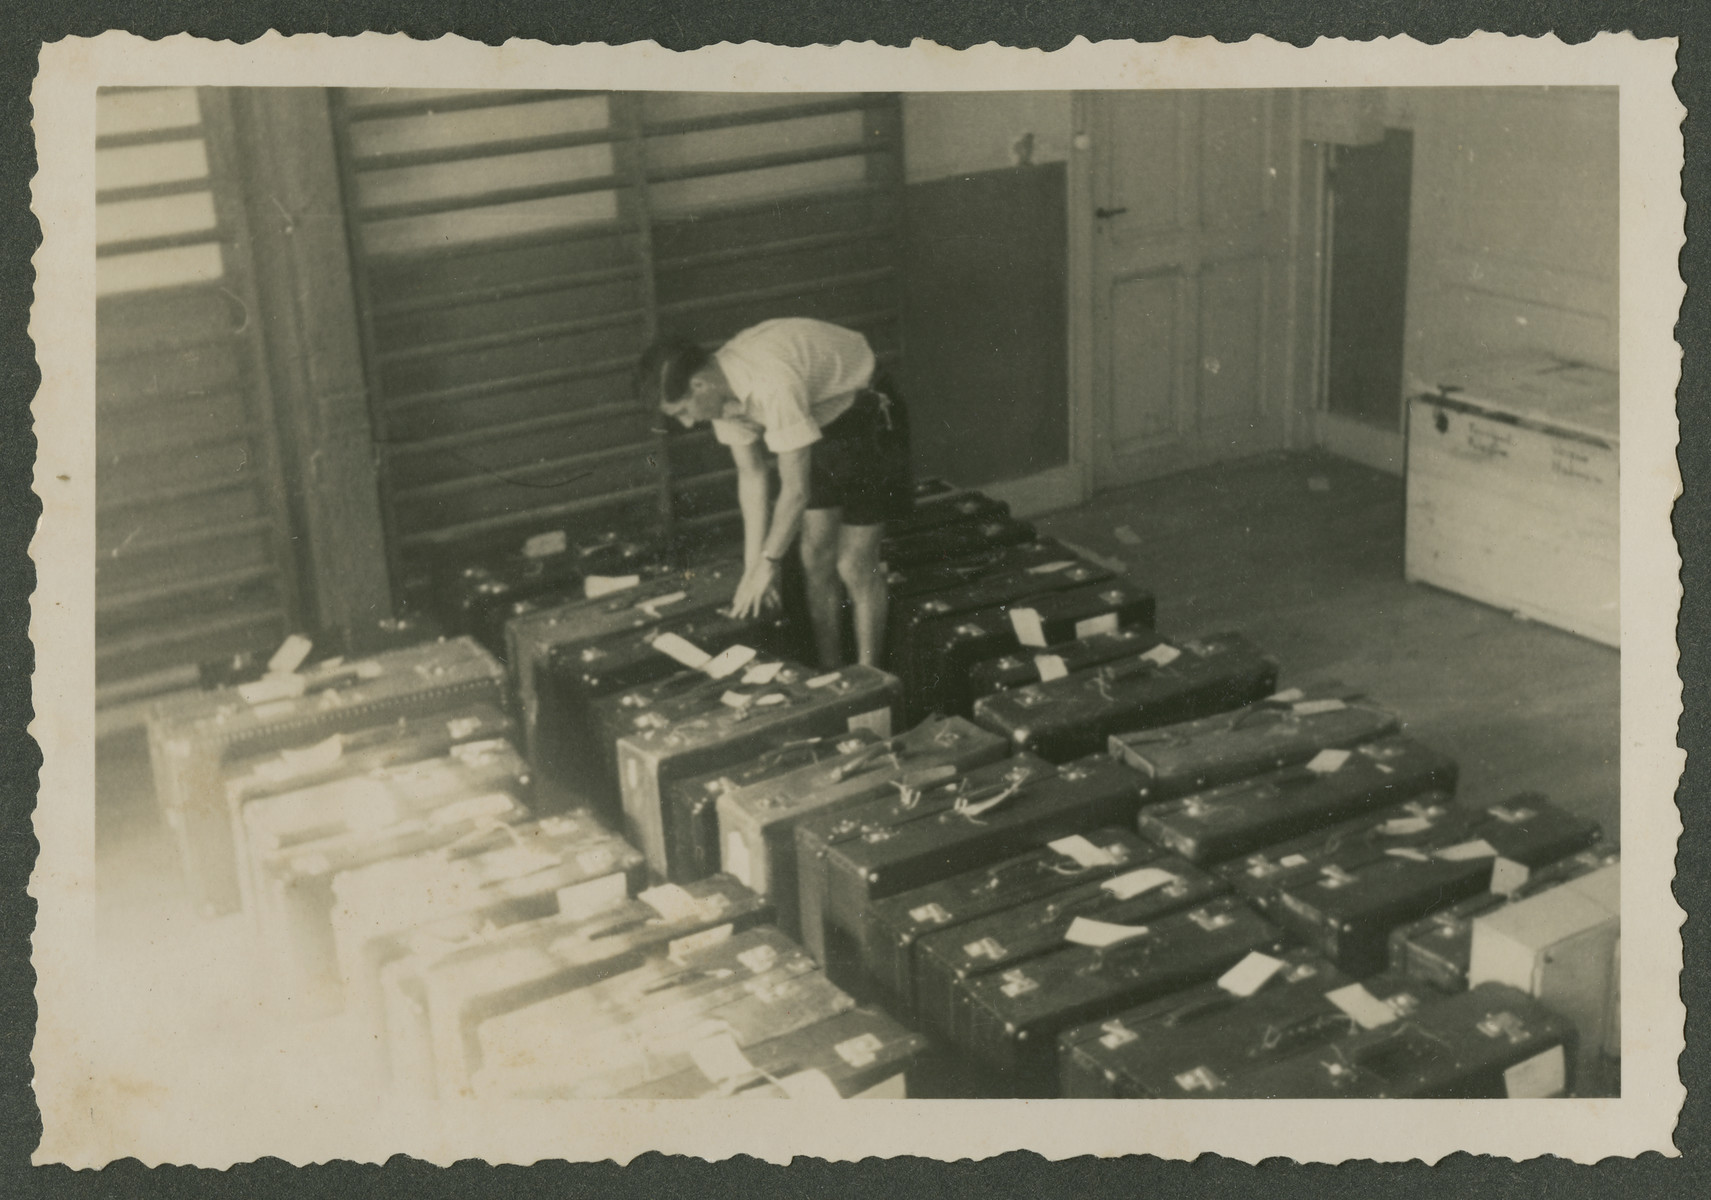 A teenage boy organizes rows of suitcases in preparation for the departure of a group of Zionist youth to Palestine.